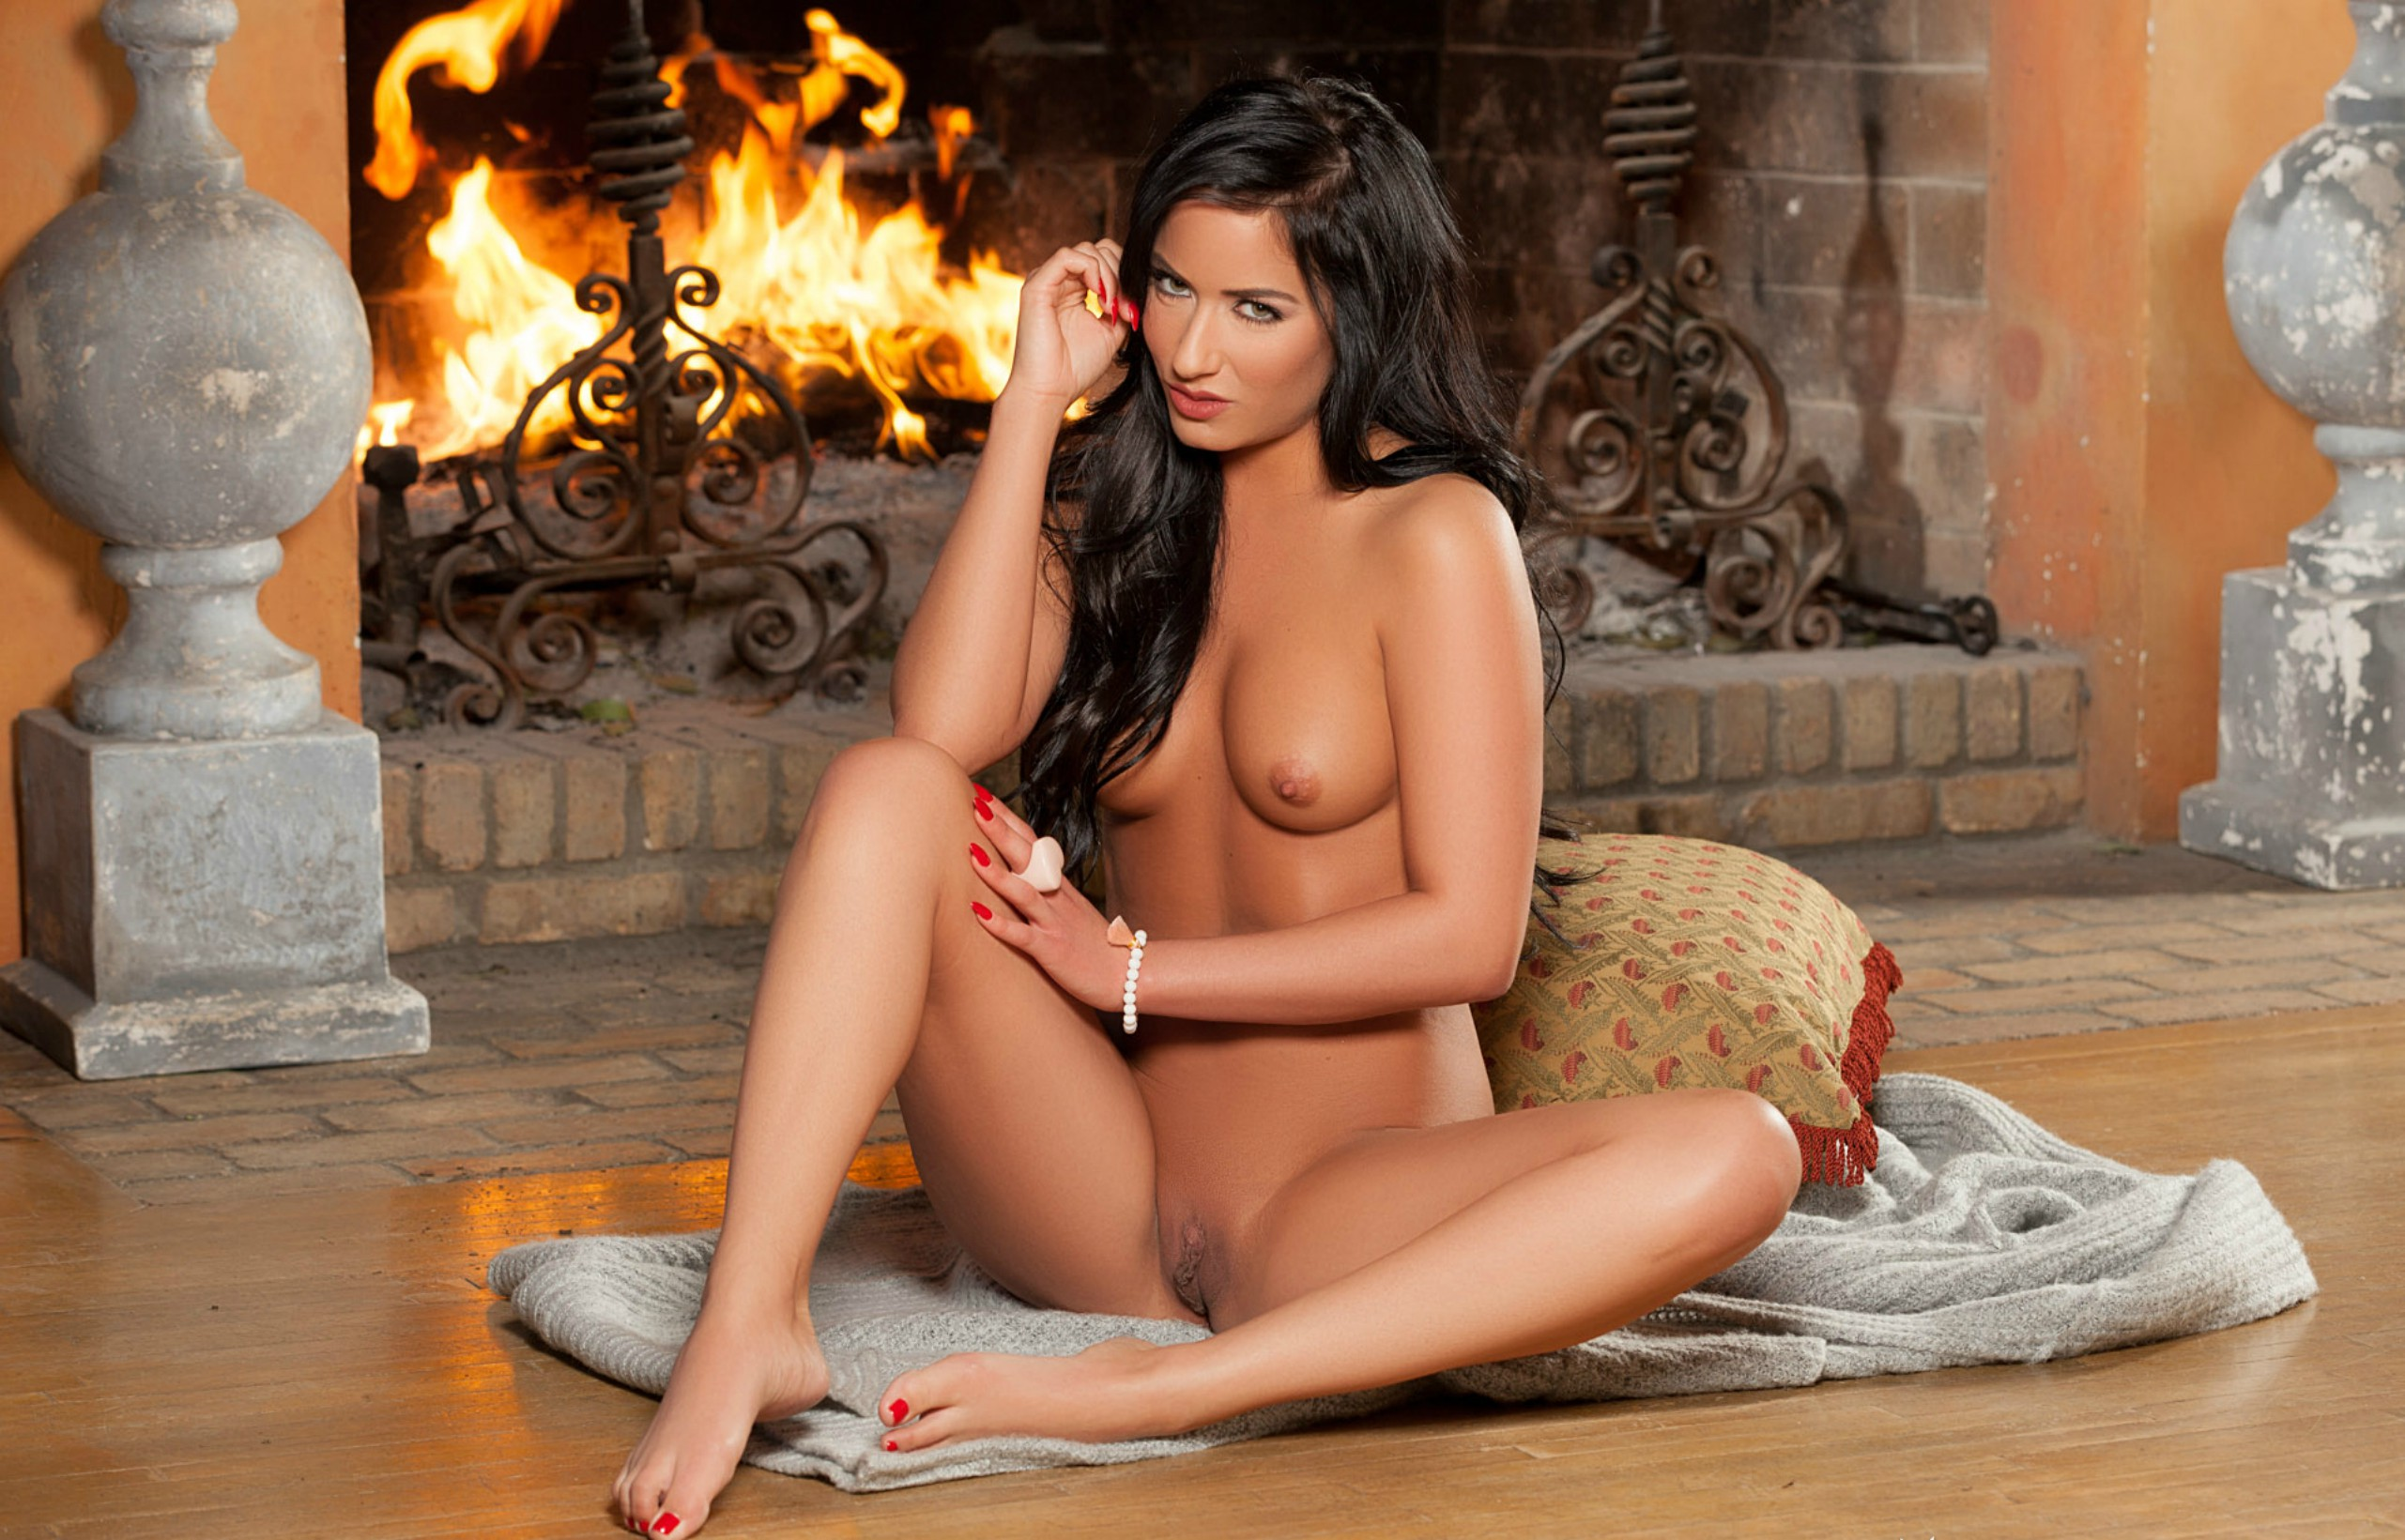 Playboy Girls Nude With Vagina